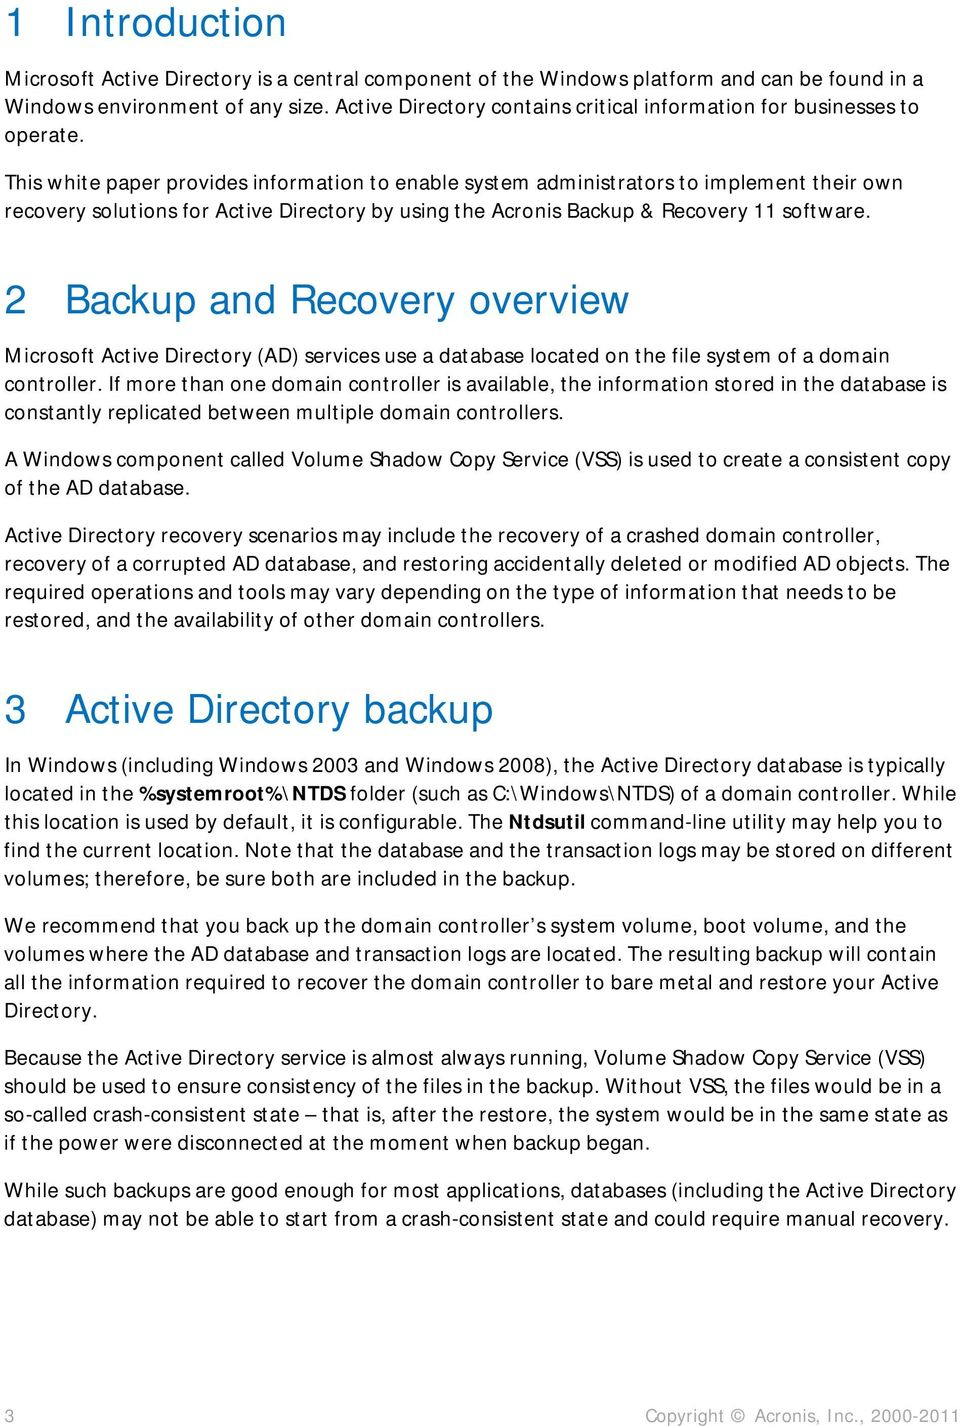 This white paper provides information to enable system administrators to implement their own recovery solutions for Active Directory by using the Acronis Backup & Recovery 11 software.